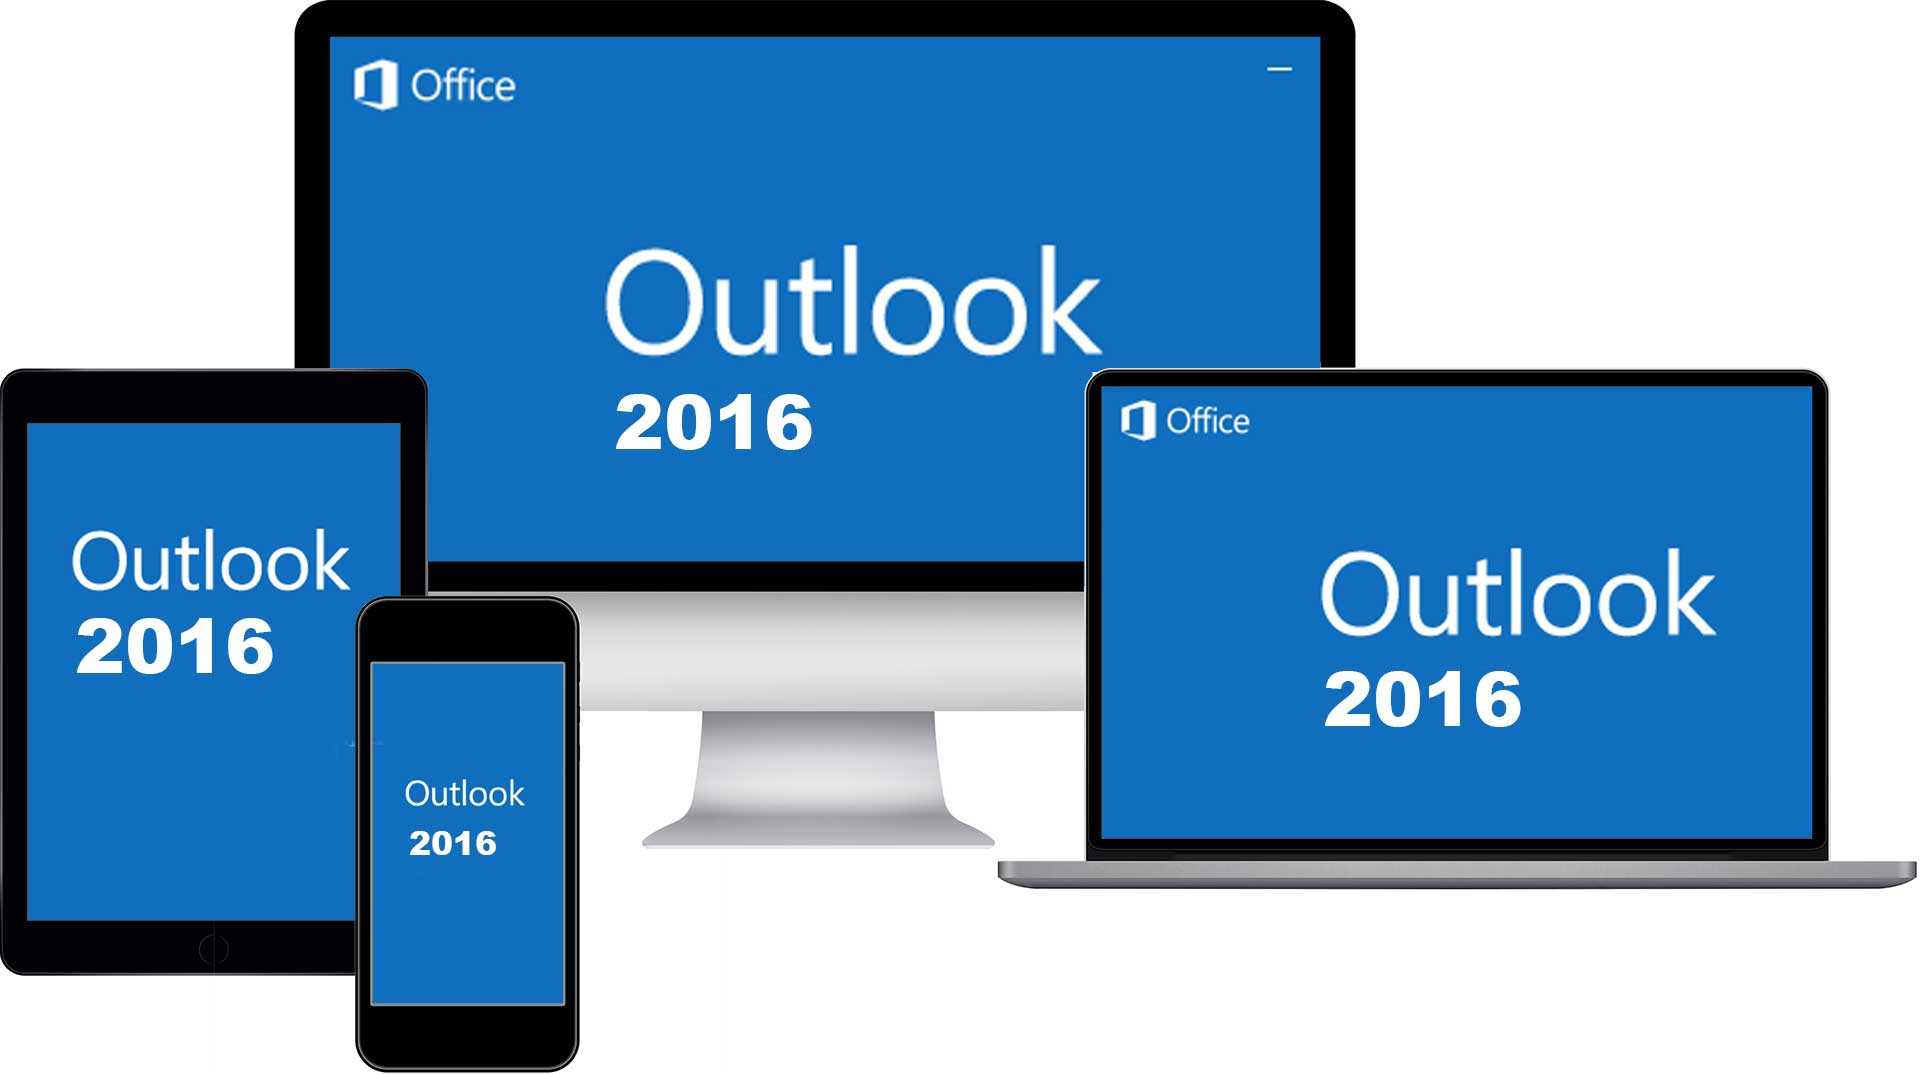 E-Mail-Konto in Outlook™ 2016 einrichten